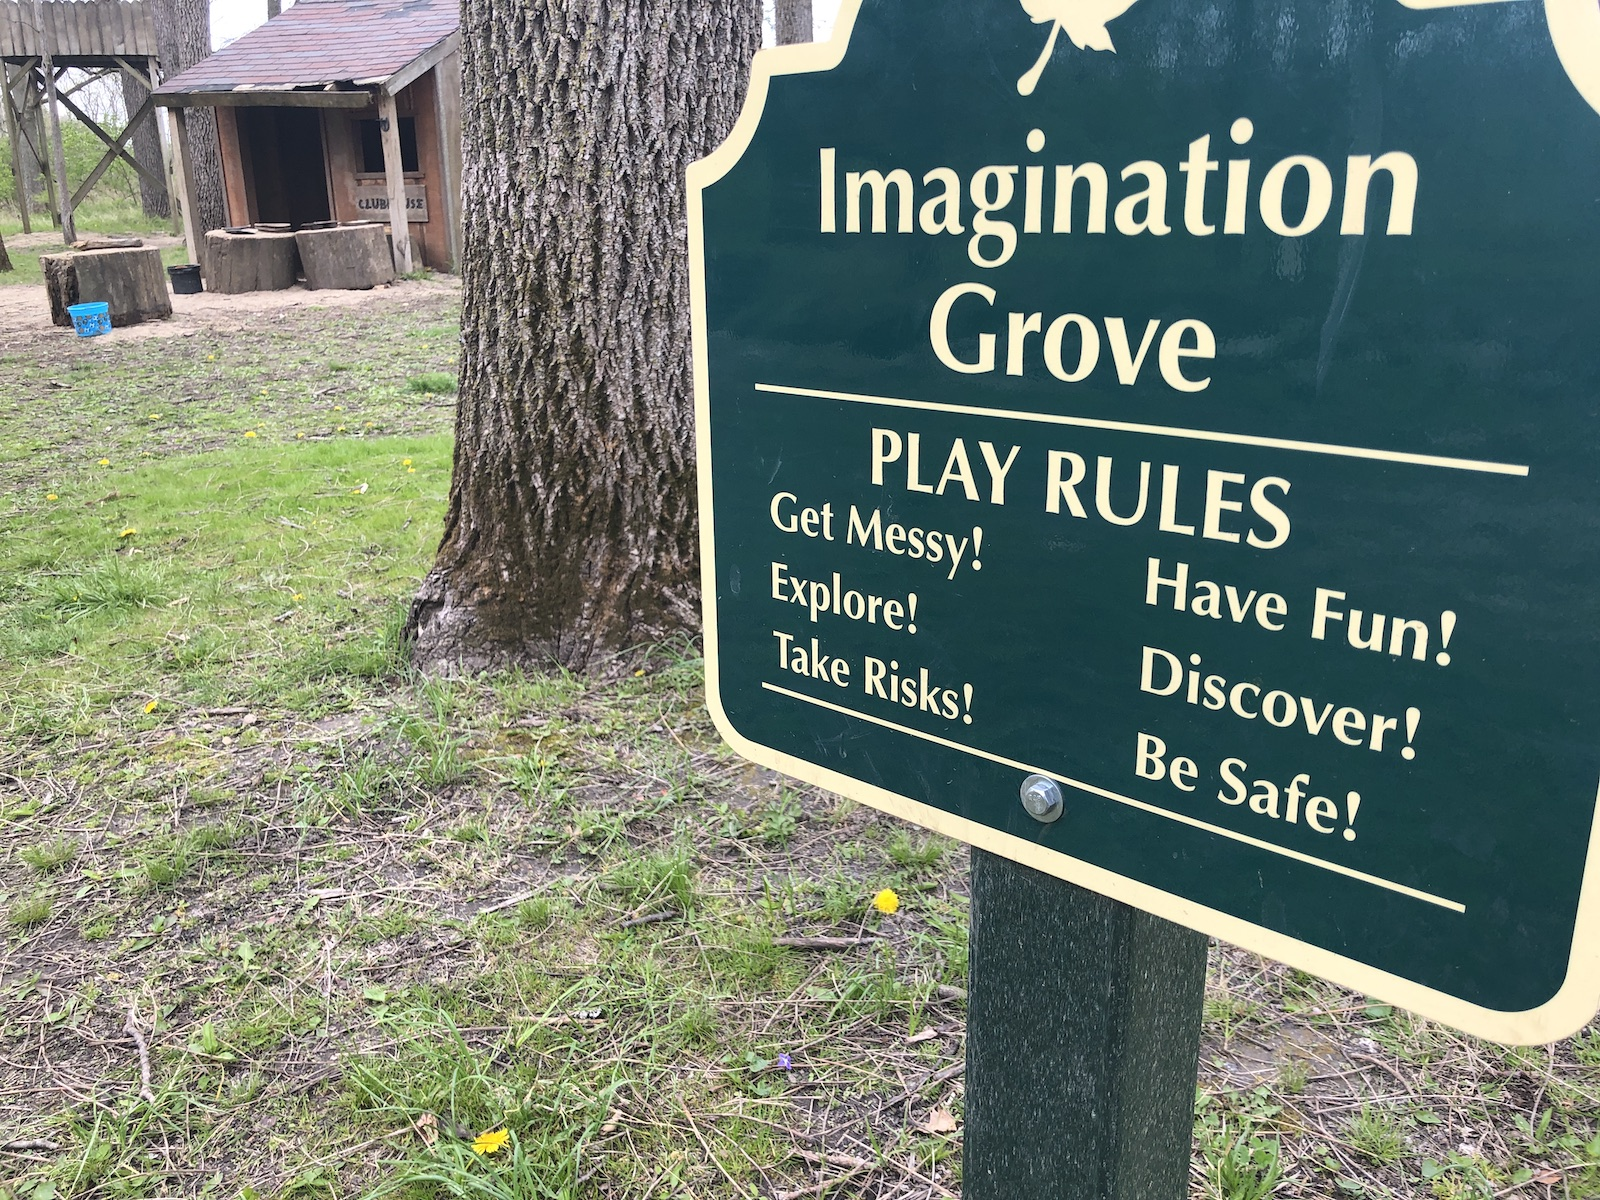 Imagination Grove Play Rules